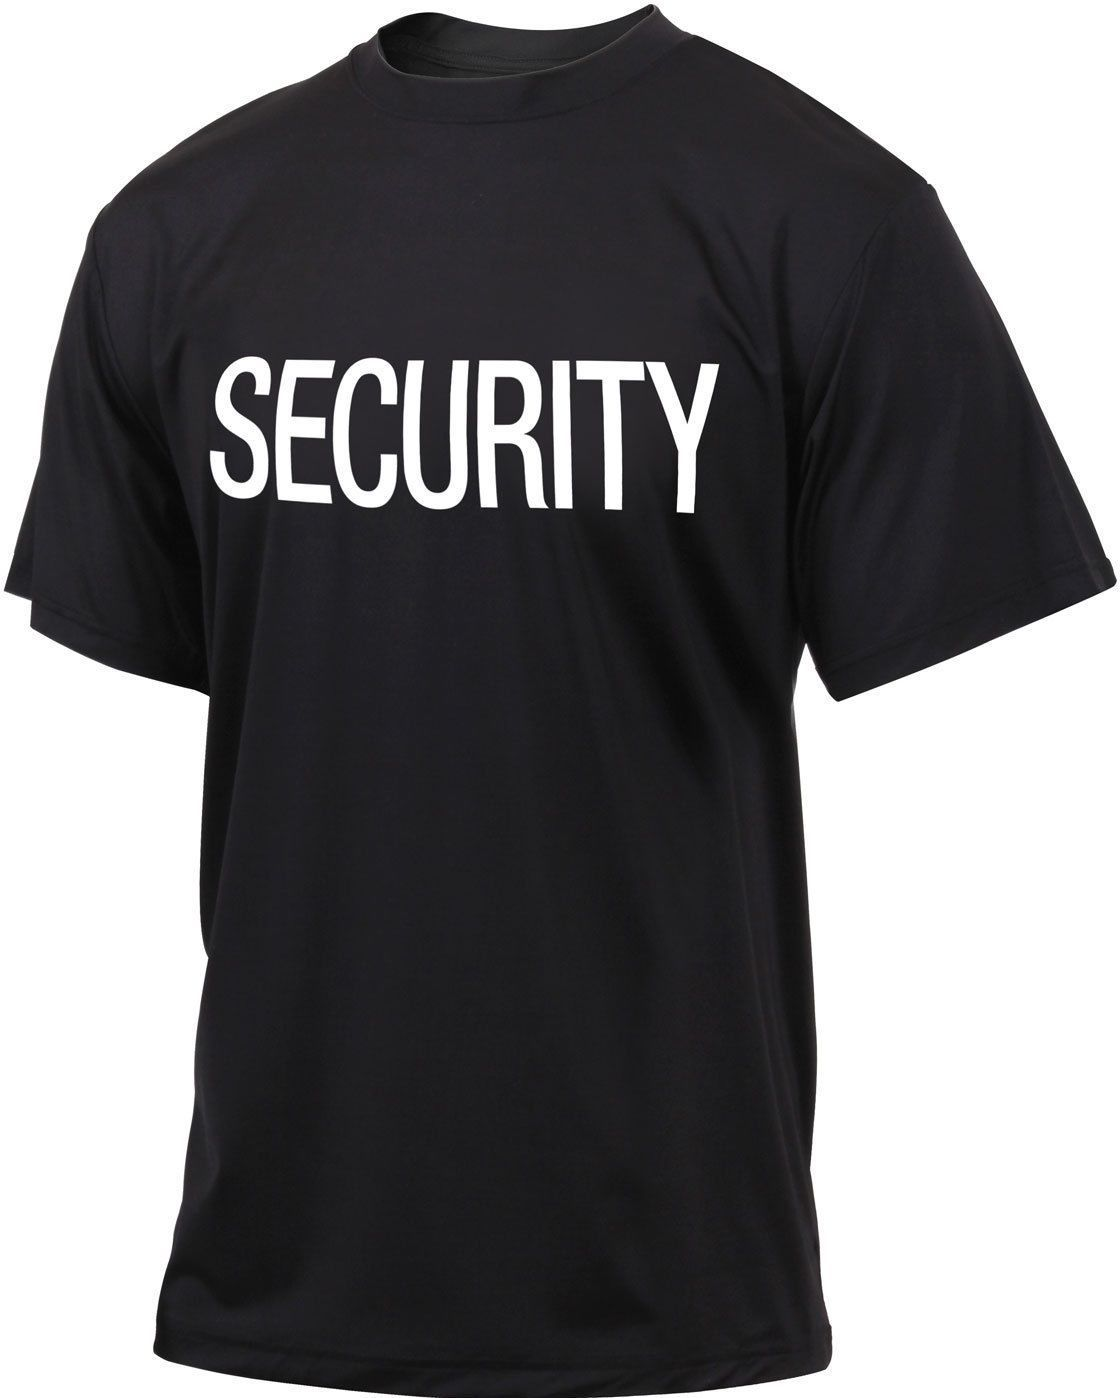 Black Quick Dry Performance Double Sided Security T-Shirt  981f00b5171